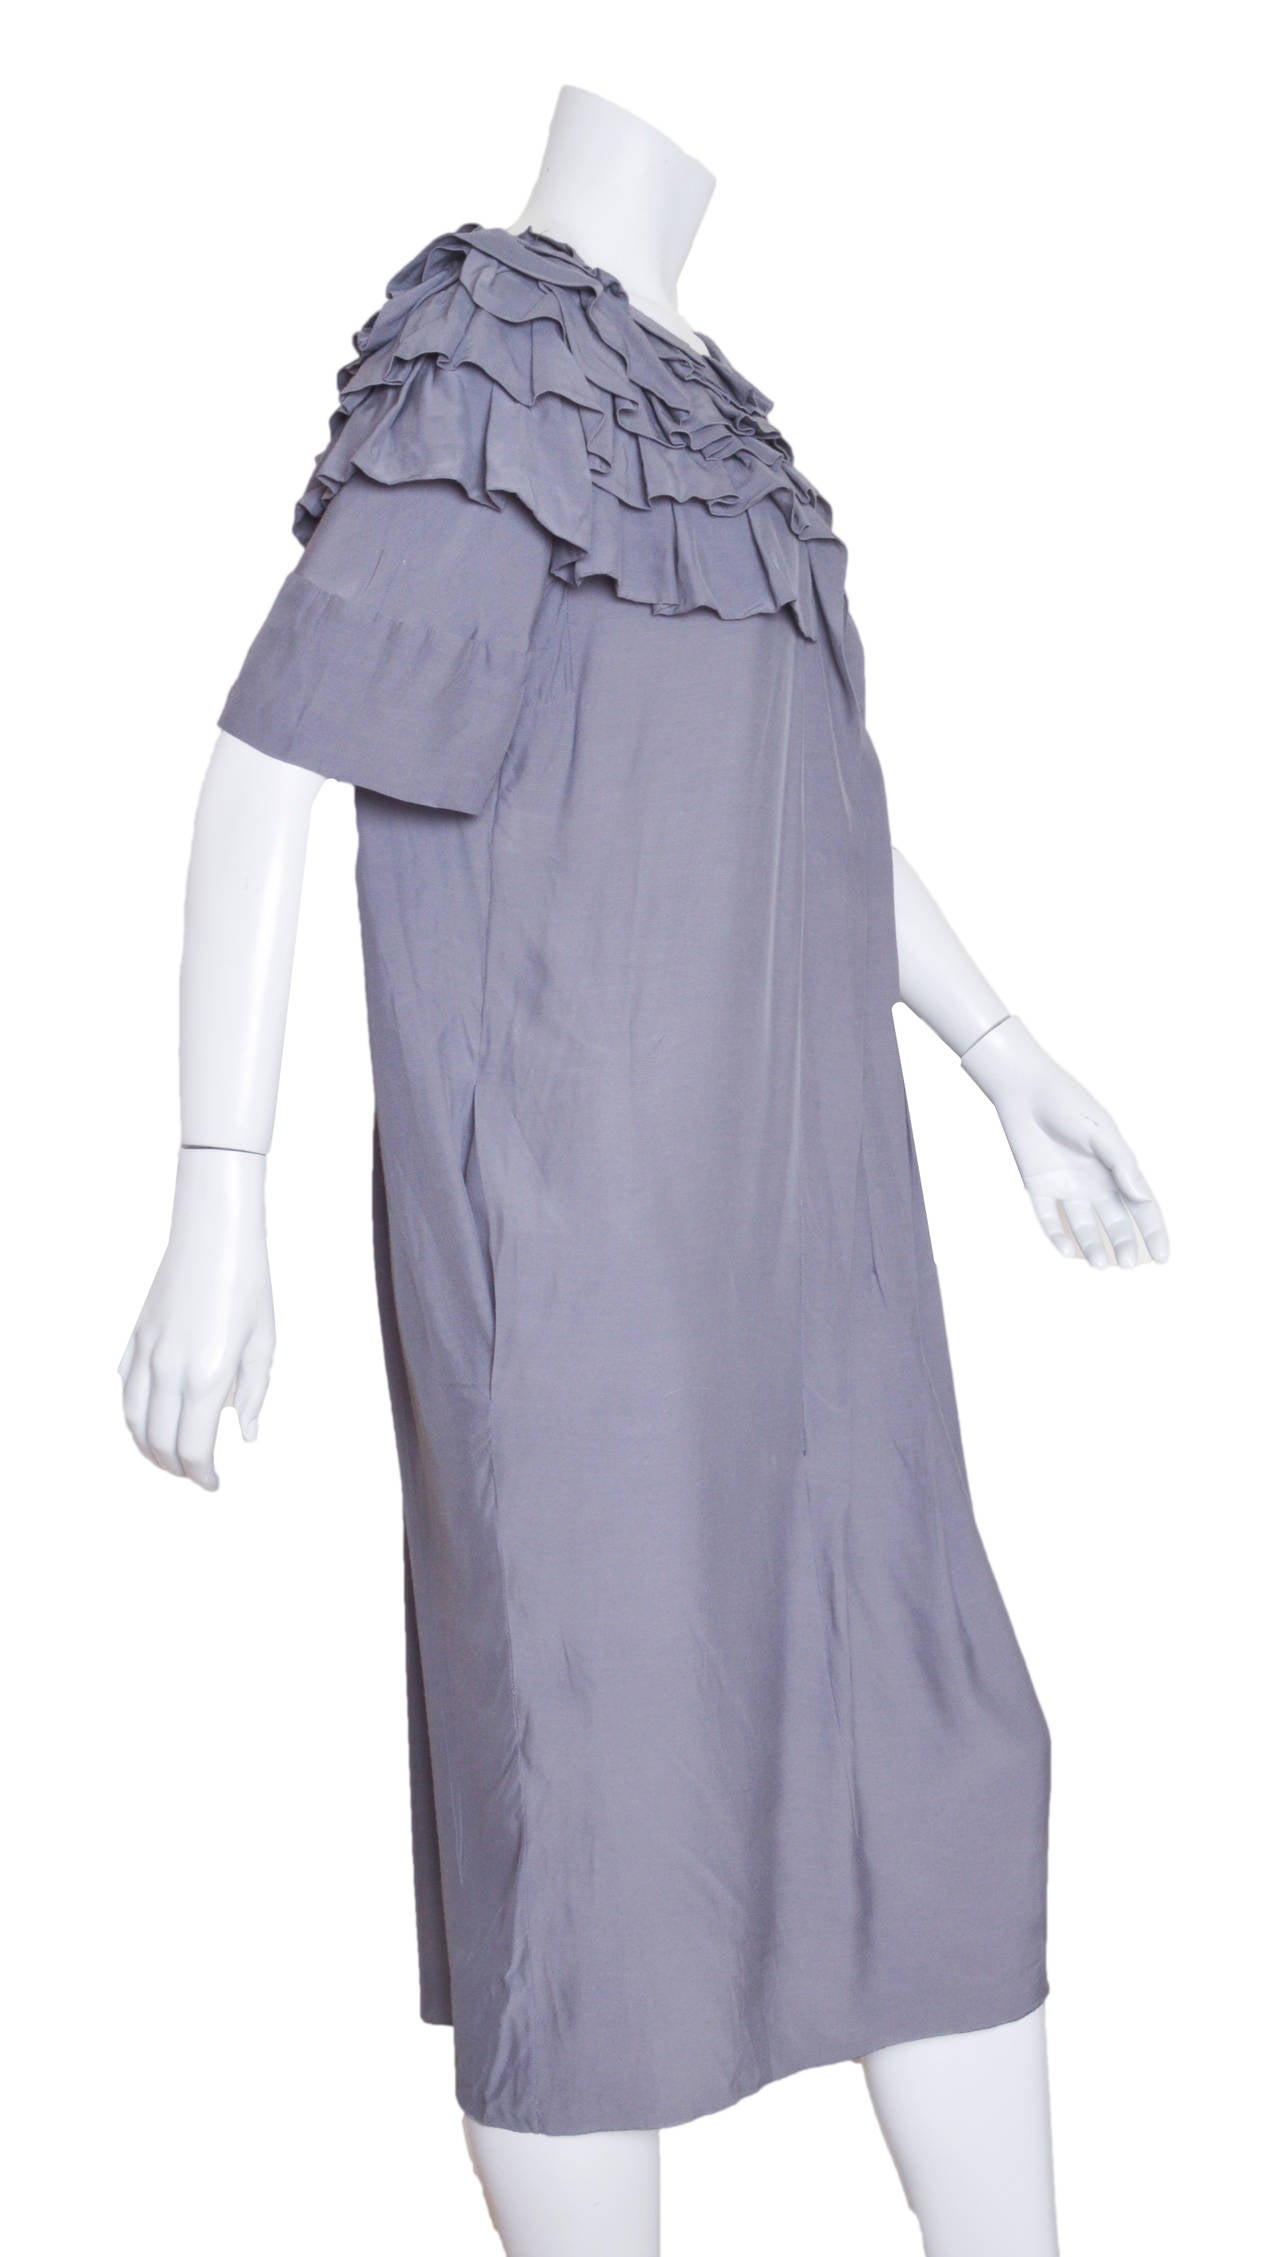 Innovative Marni gray dress. Beautifully folded fabric ruffles  that follow the neckline and wrap around back shoulder. Ruffles open into inverted pleats down the dress.  Exposed zipper in the back and hidden pockets. Tagged a size 42.